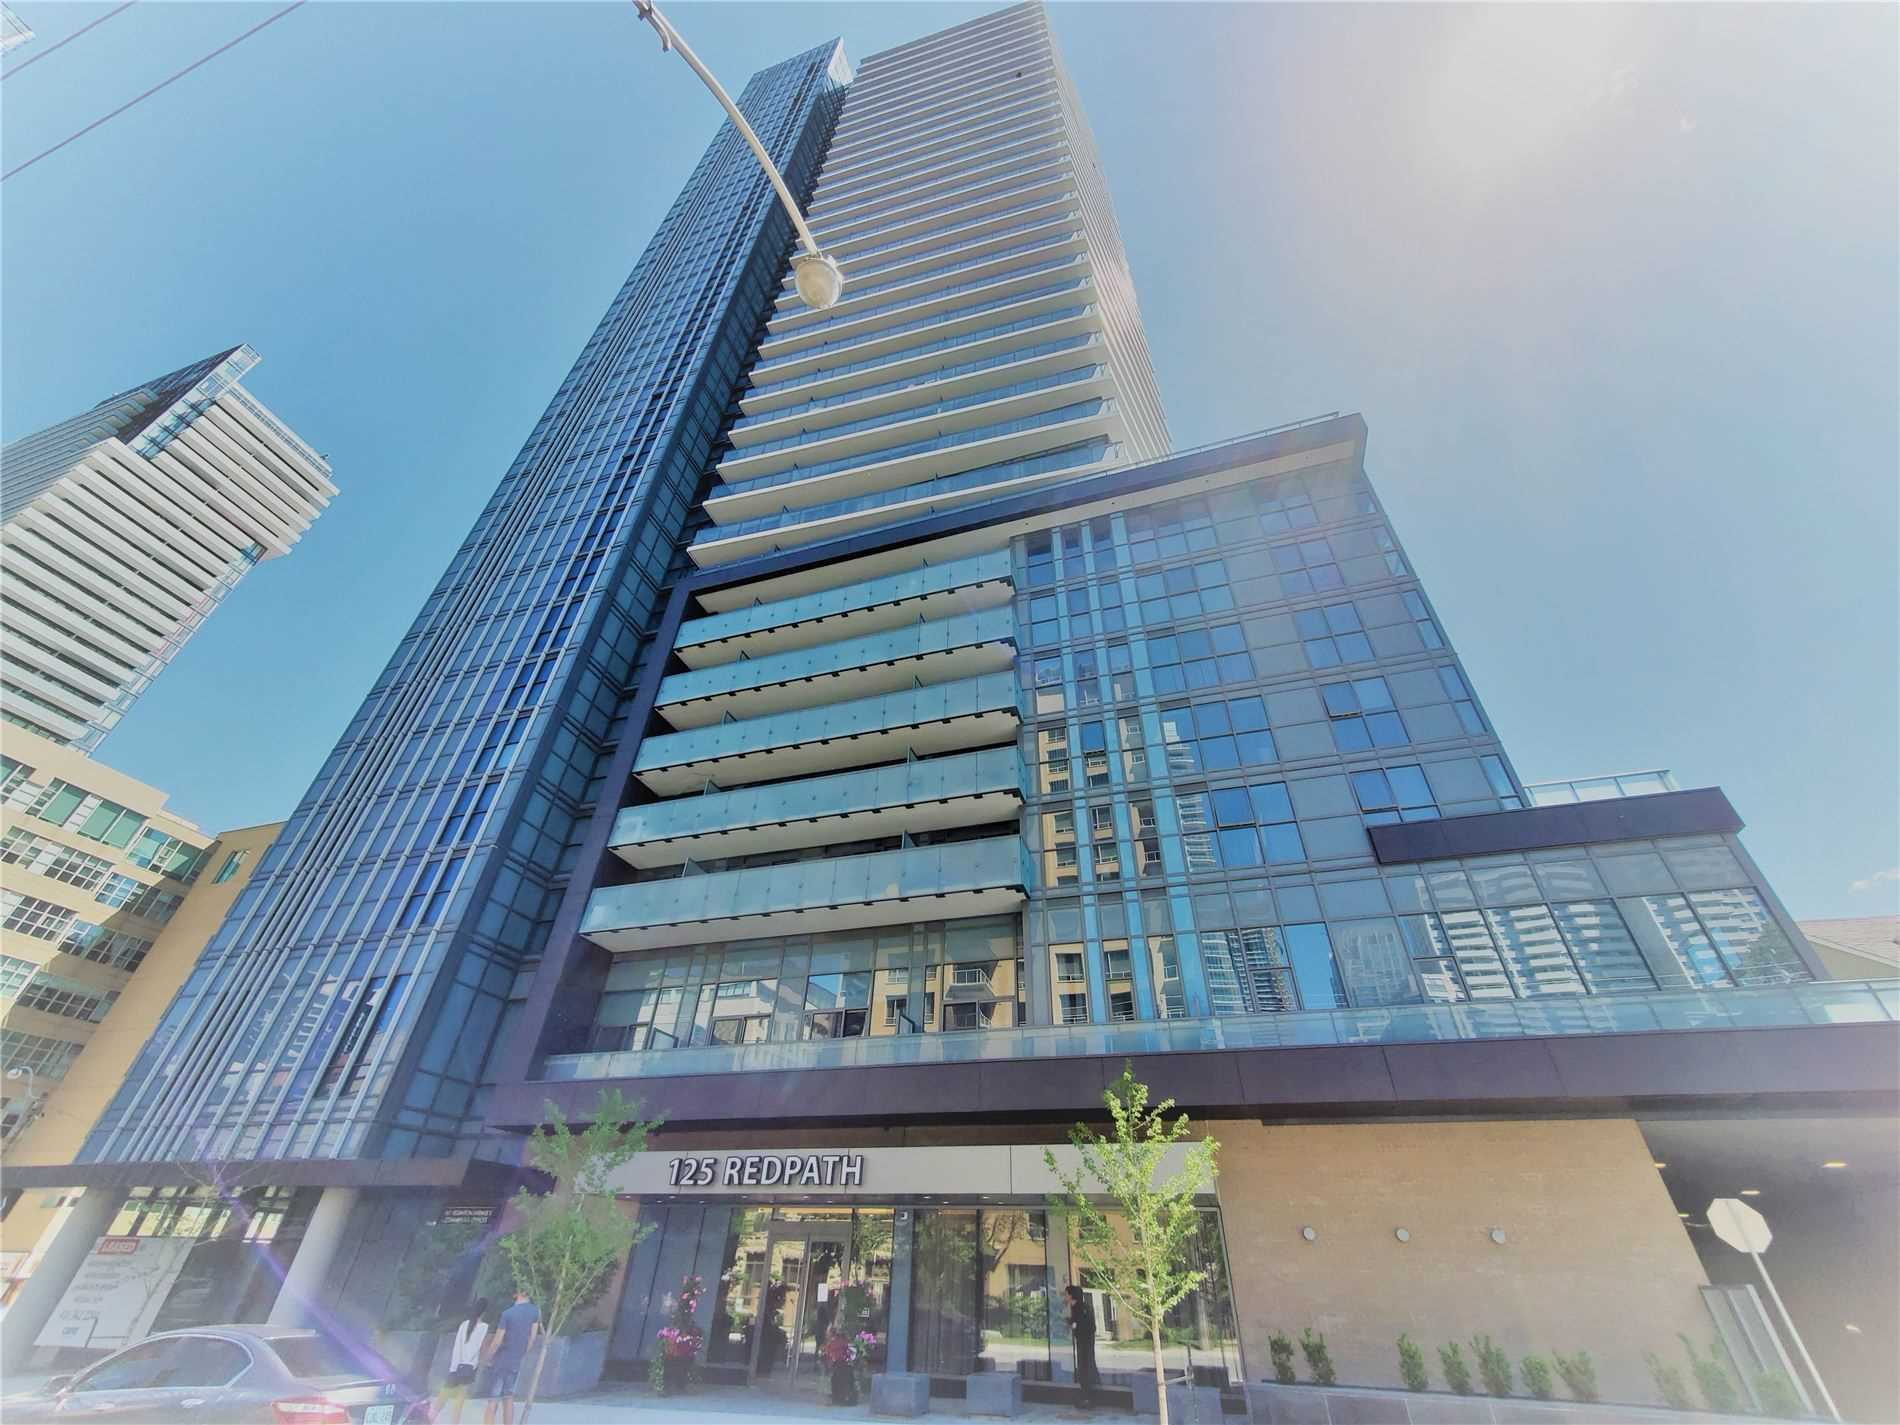 125 Redpath Ave, Toronto, Ontario M4S2J9, 3 Rooms Rooms,1 BathroomBathrooms,Condo Apt,For Sale,Redpath,C4888954